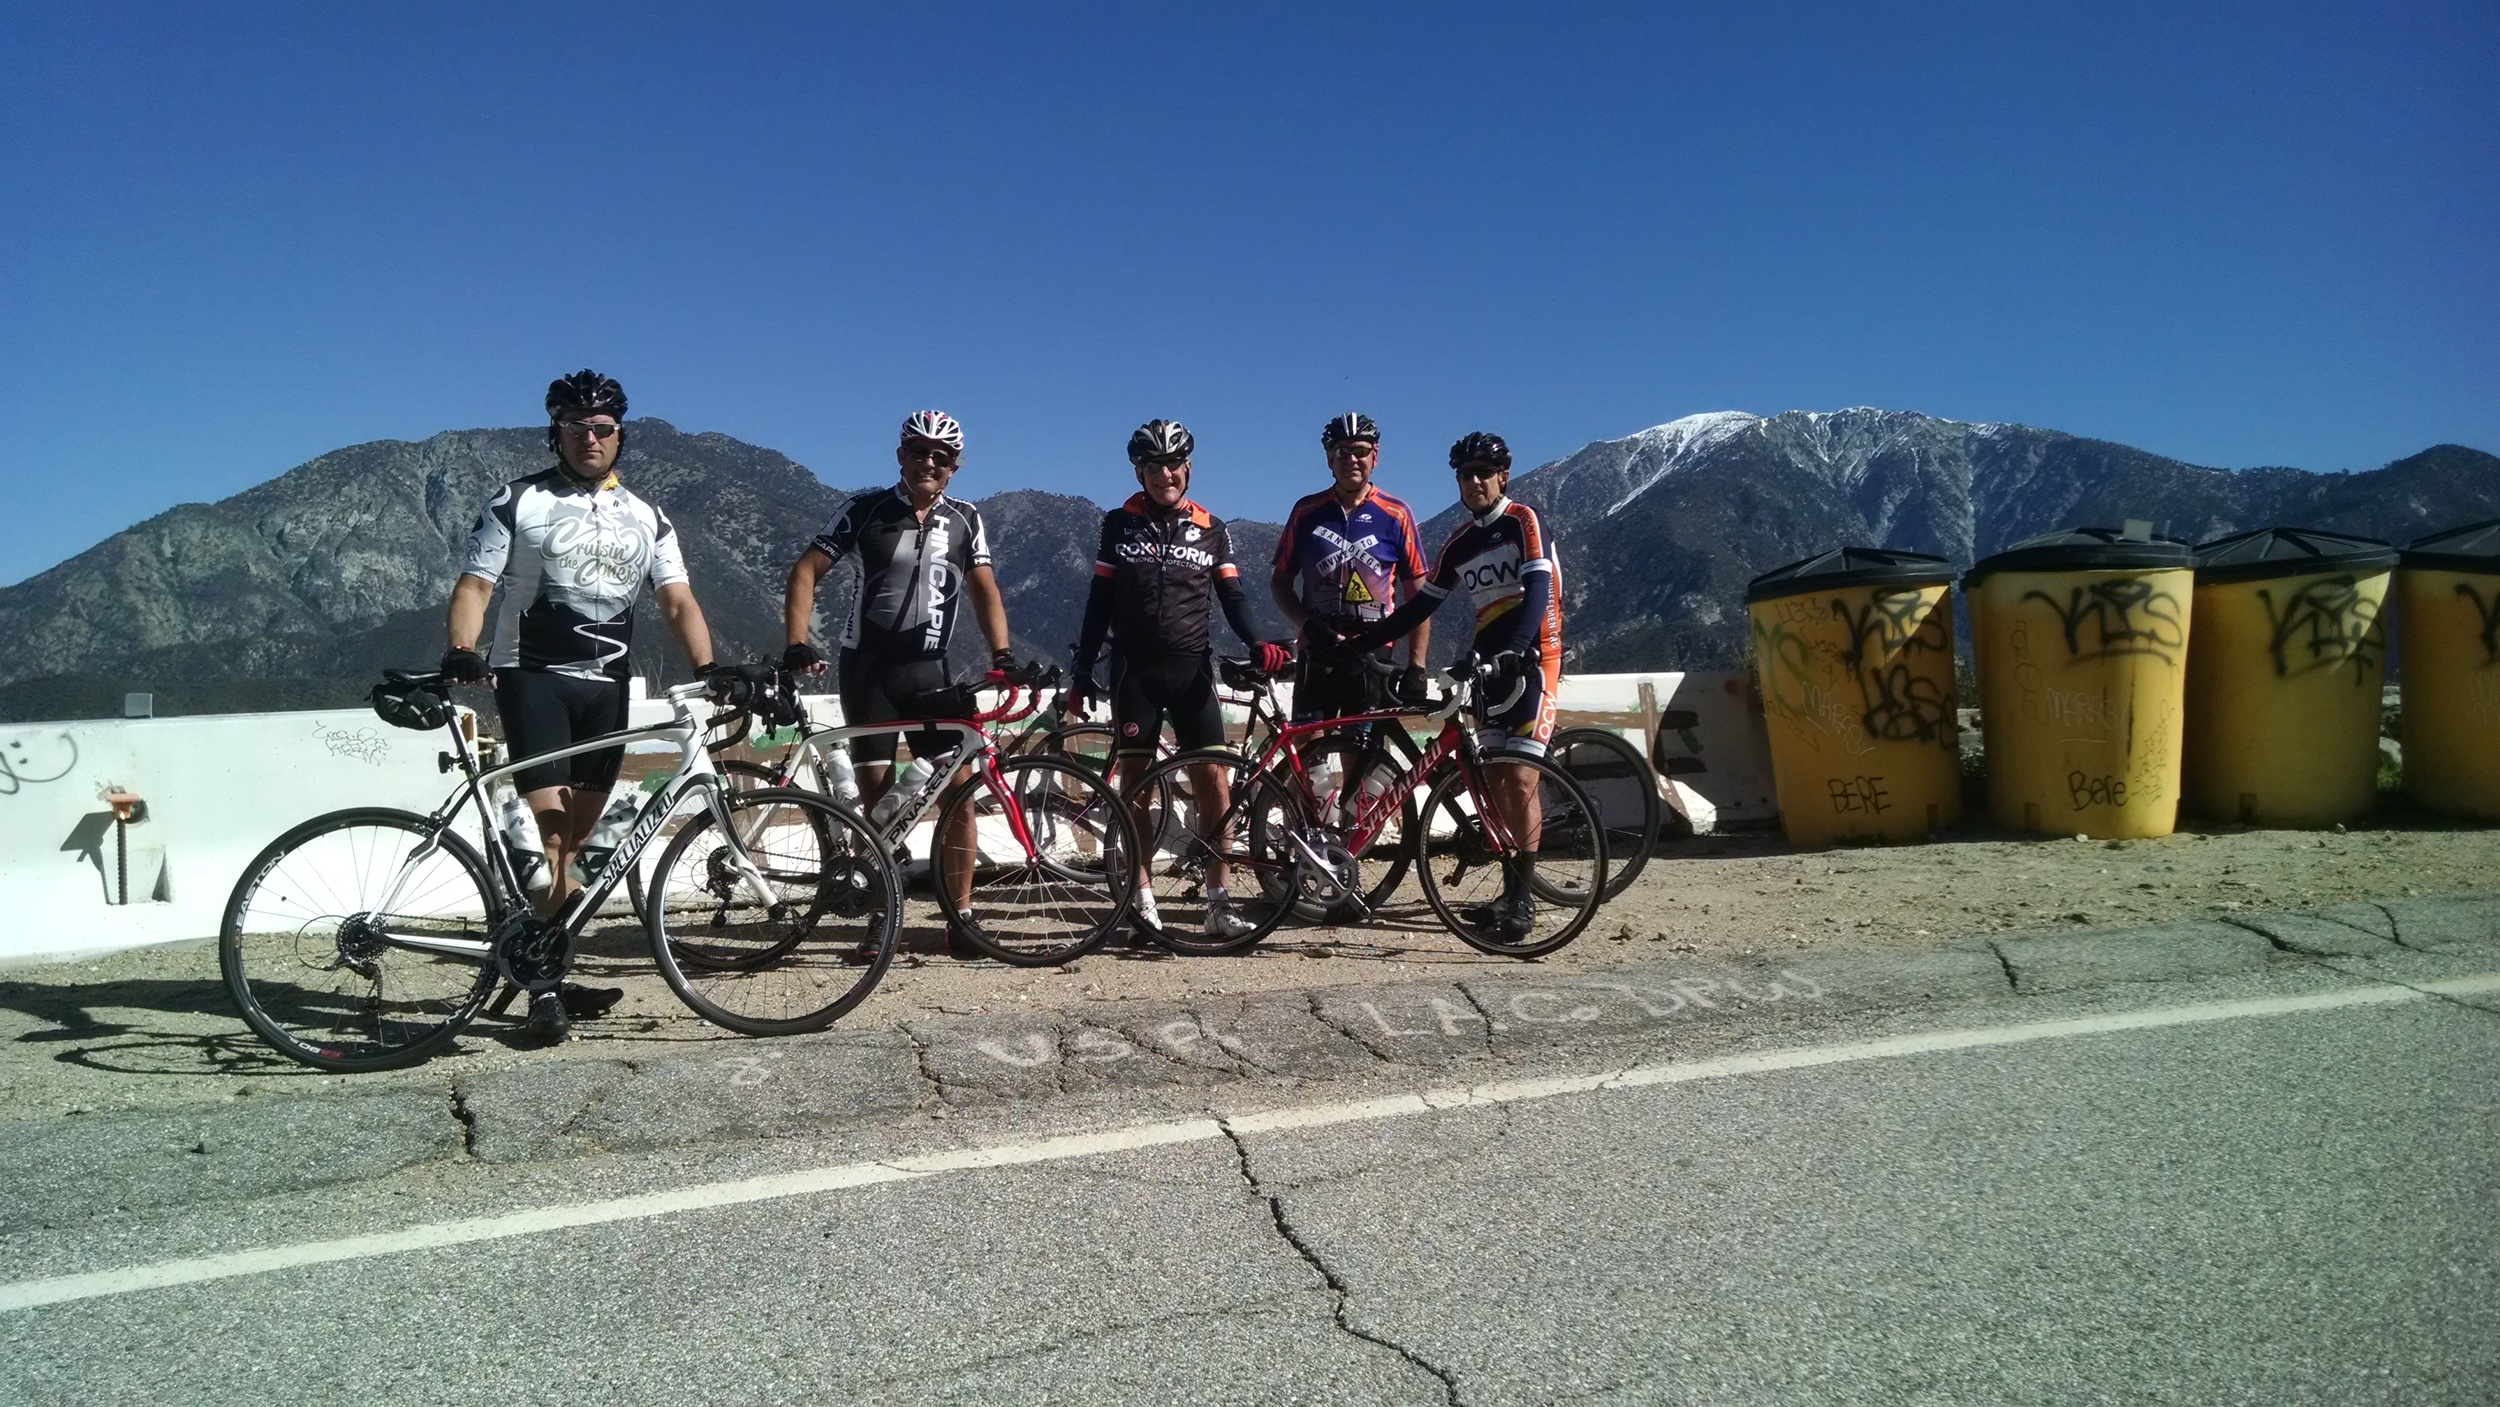 Sean, Vic and BCI members Vince Wilhelm, Jim Norman and Bruce Campbell taking a break in front of Mt. Baldy.